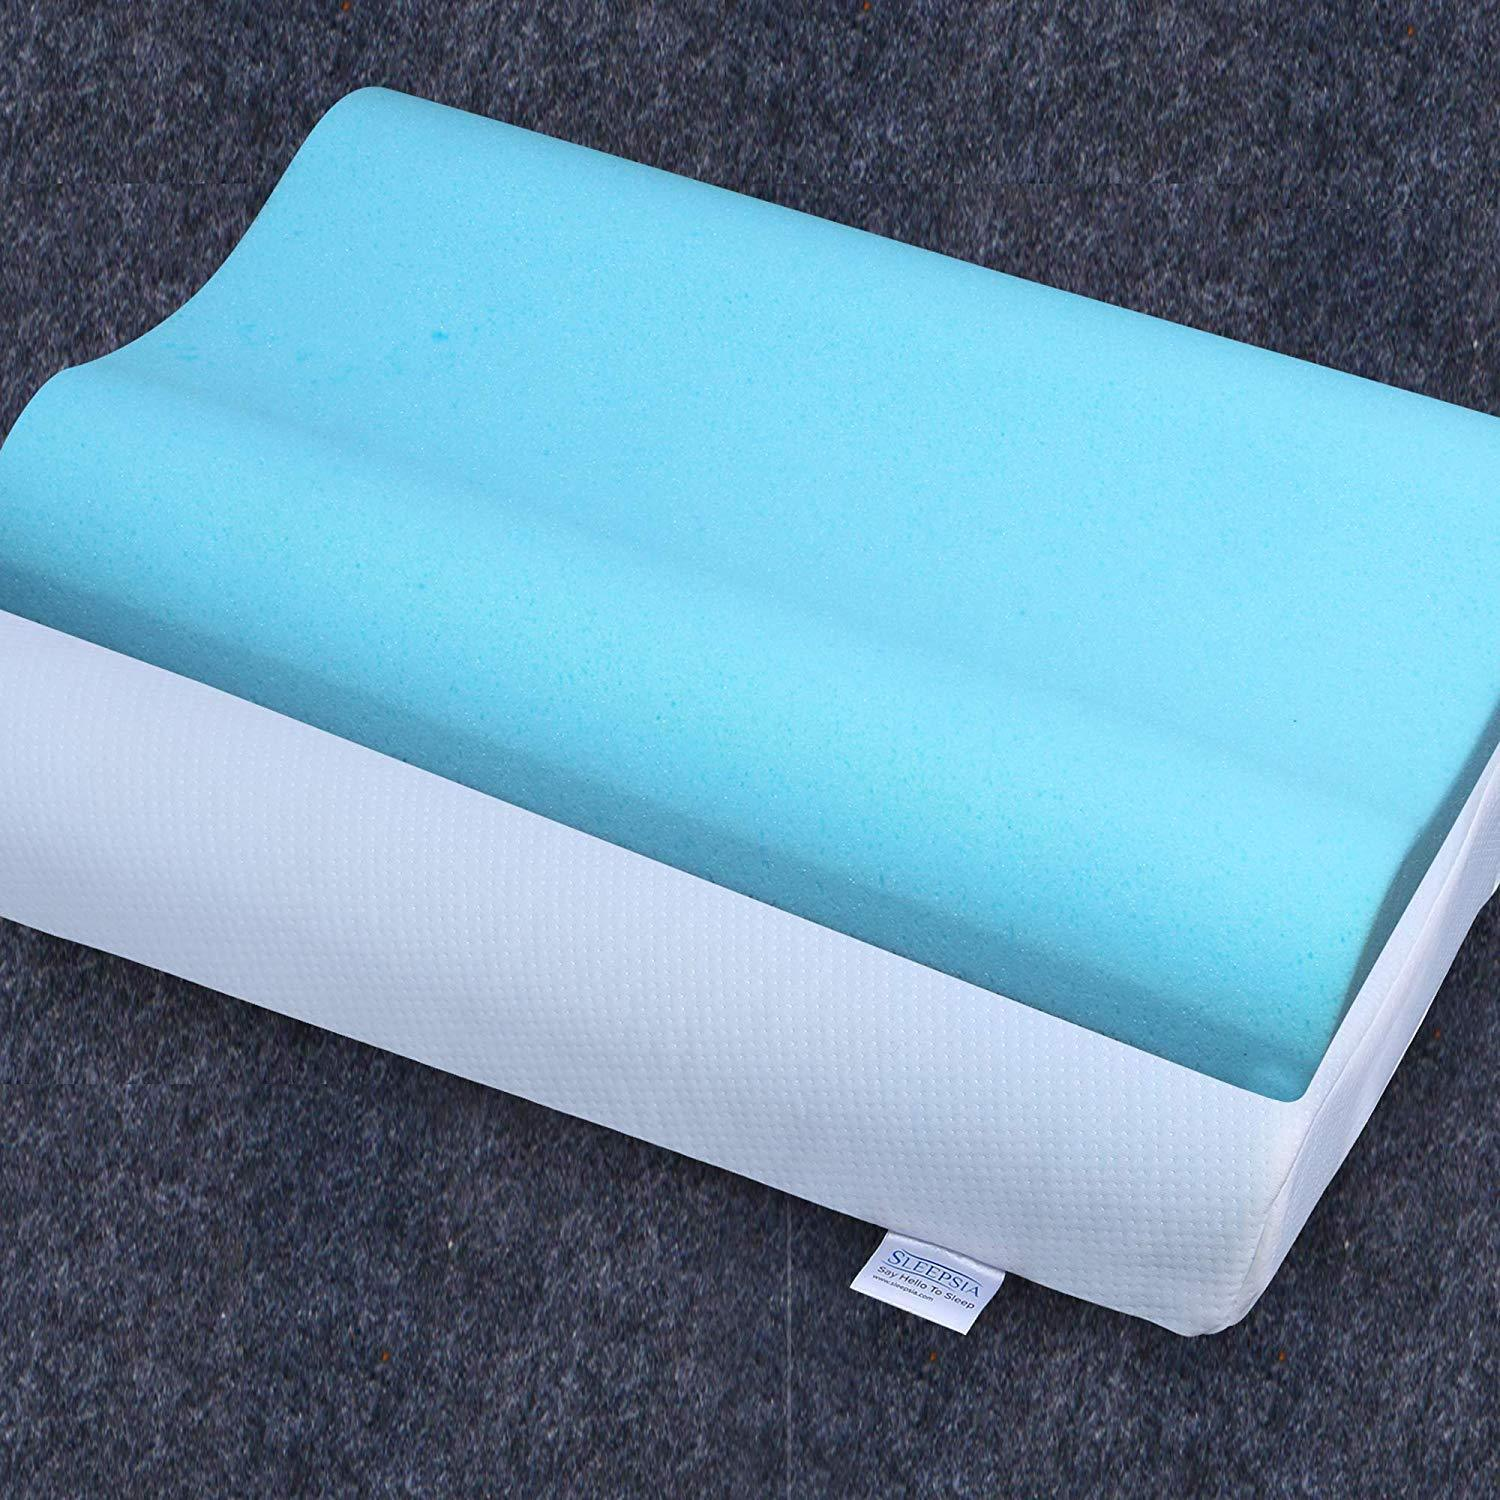 The Best Shoulder Pain Memory Foam Pillow with Infused Gel